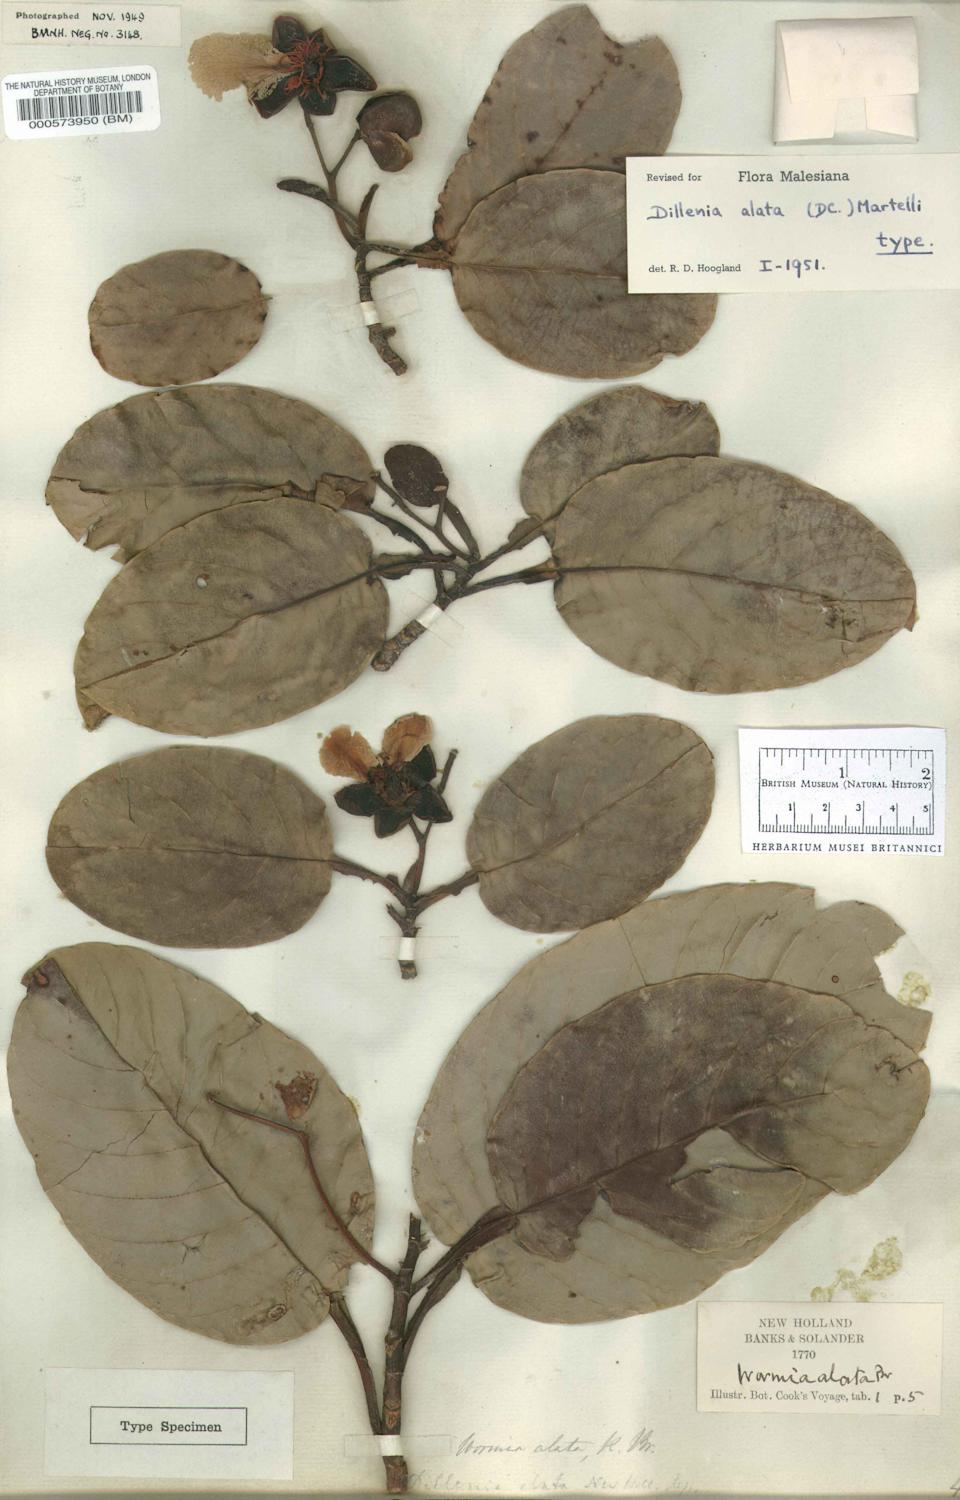 Joseph Banks's herbarium sheet – plants collected by pioneering scientist Joseph Banks on Captain Cook's first voyage to Australia in 1770. Banks's global interests were reflected in the enormous natural history, ethnography and literature collections he amassed in his lifetime. (Natural History Museum)